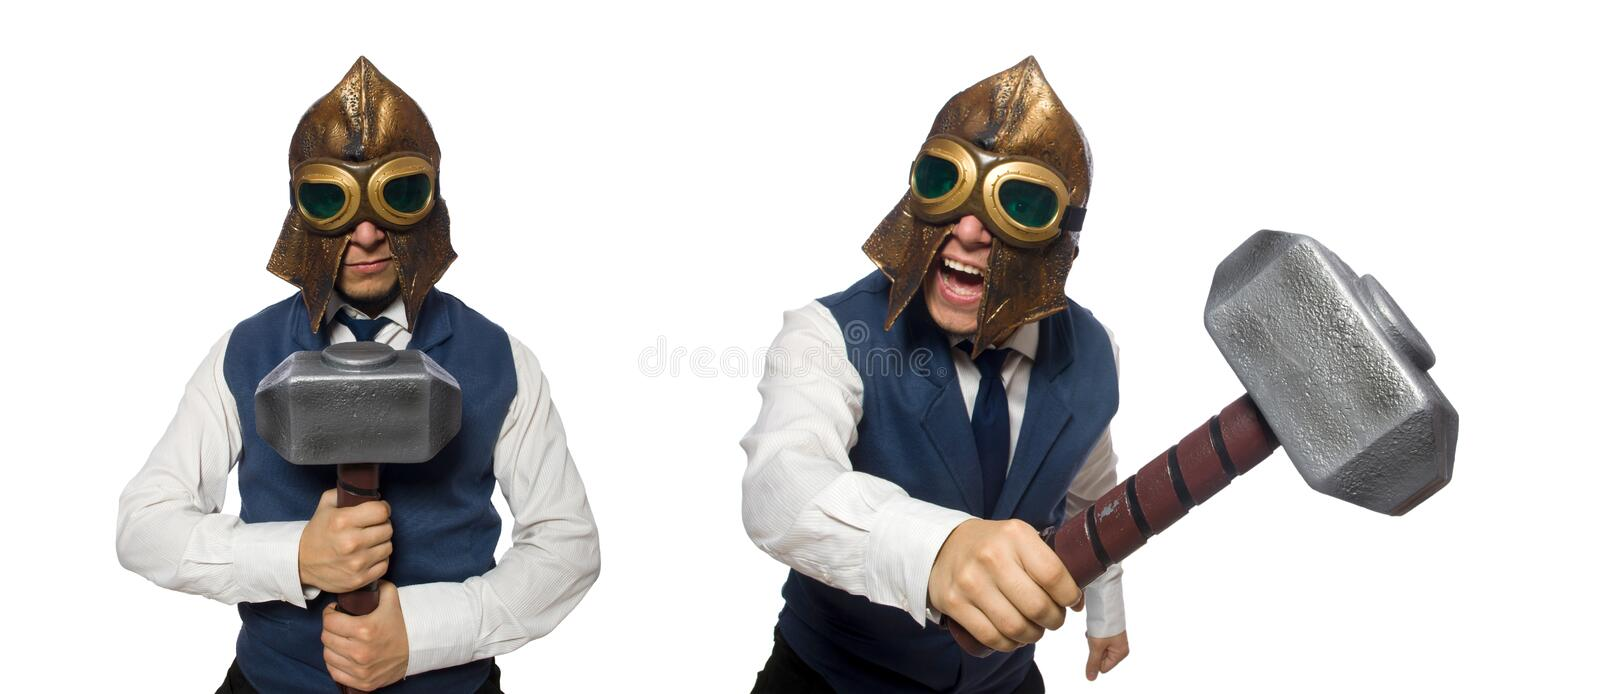 The funny man wearing pilot helmet and goggles royalty free stock image